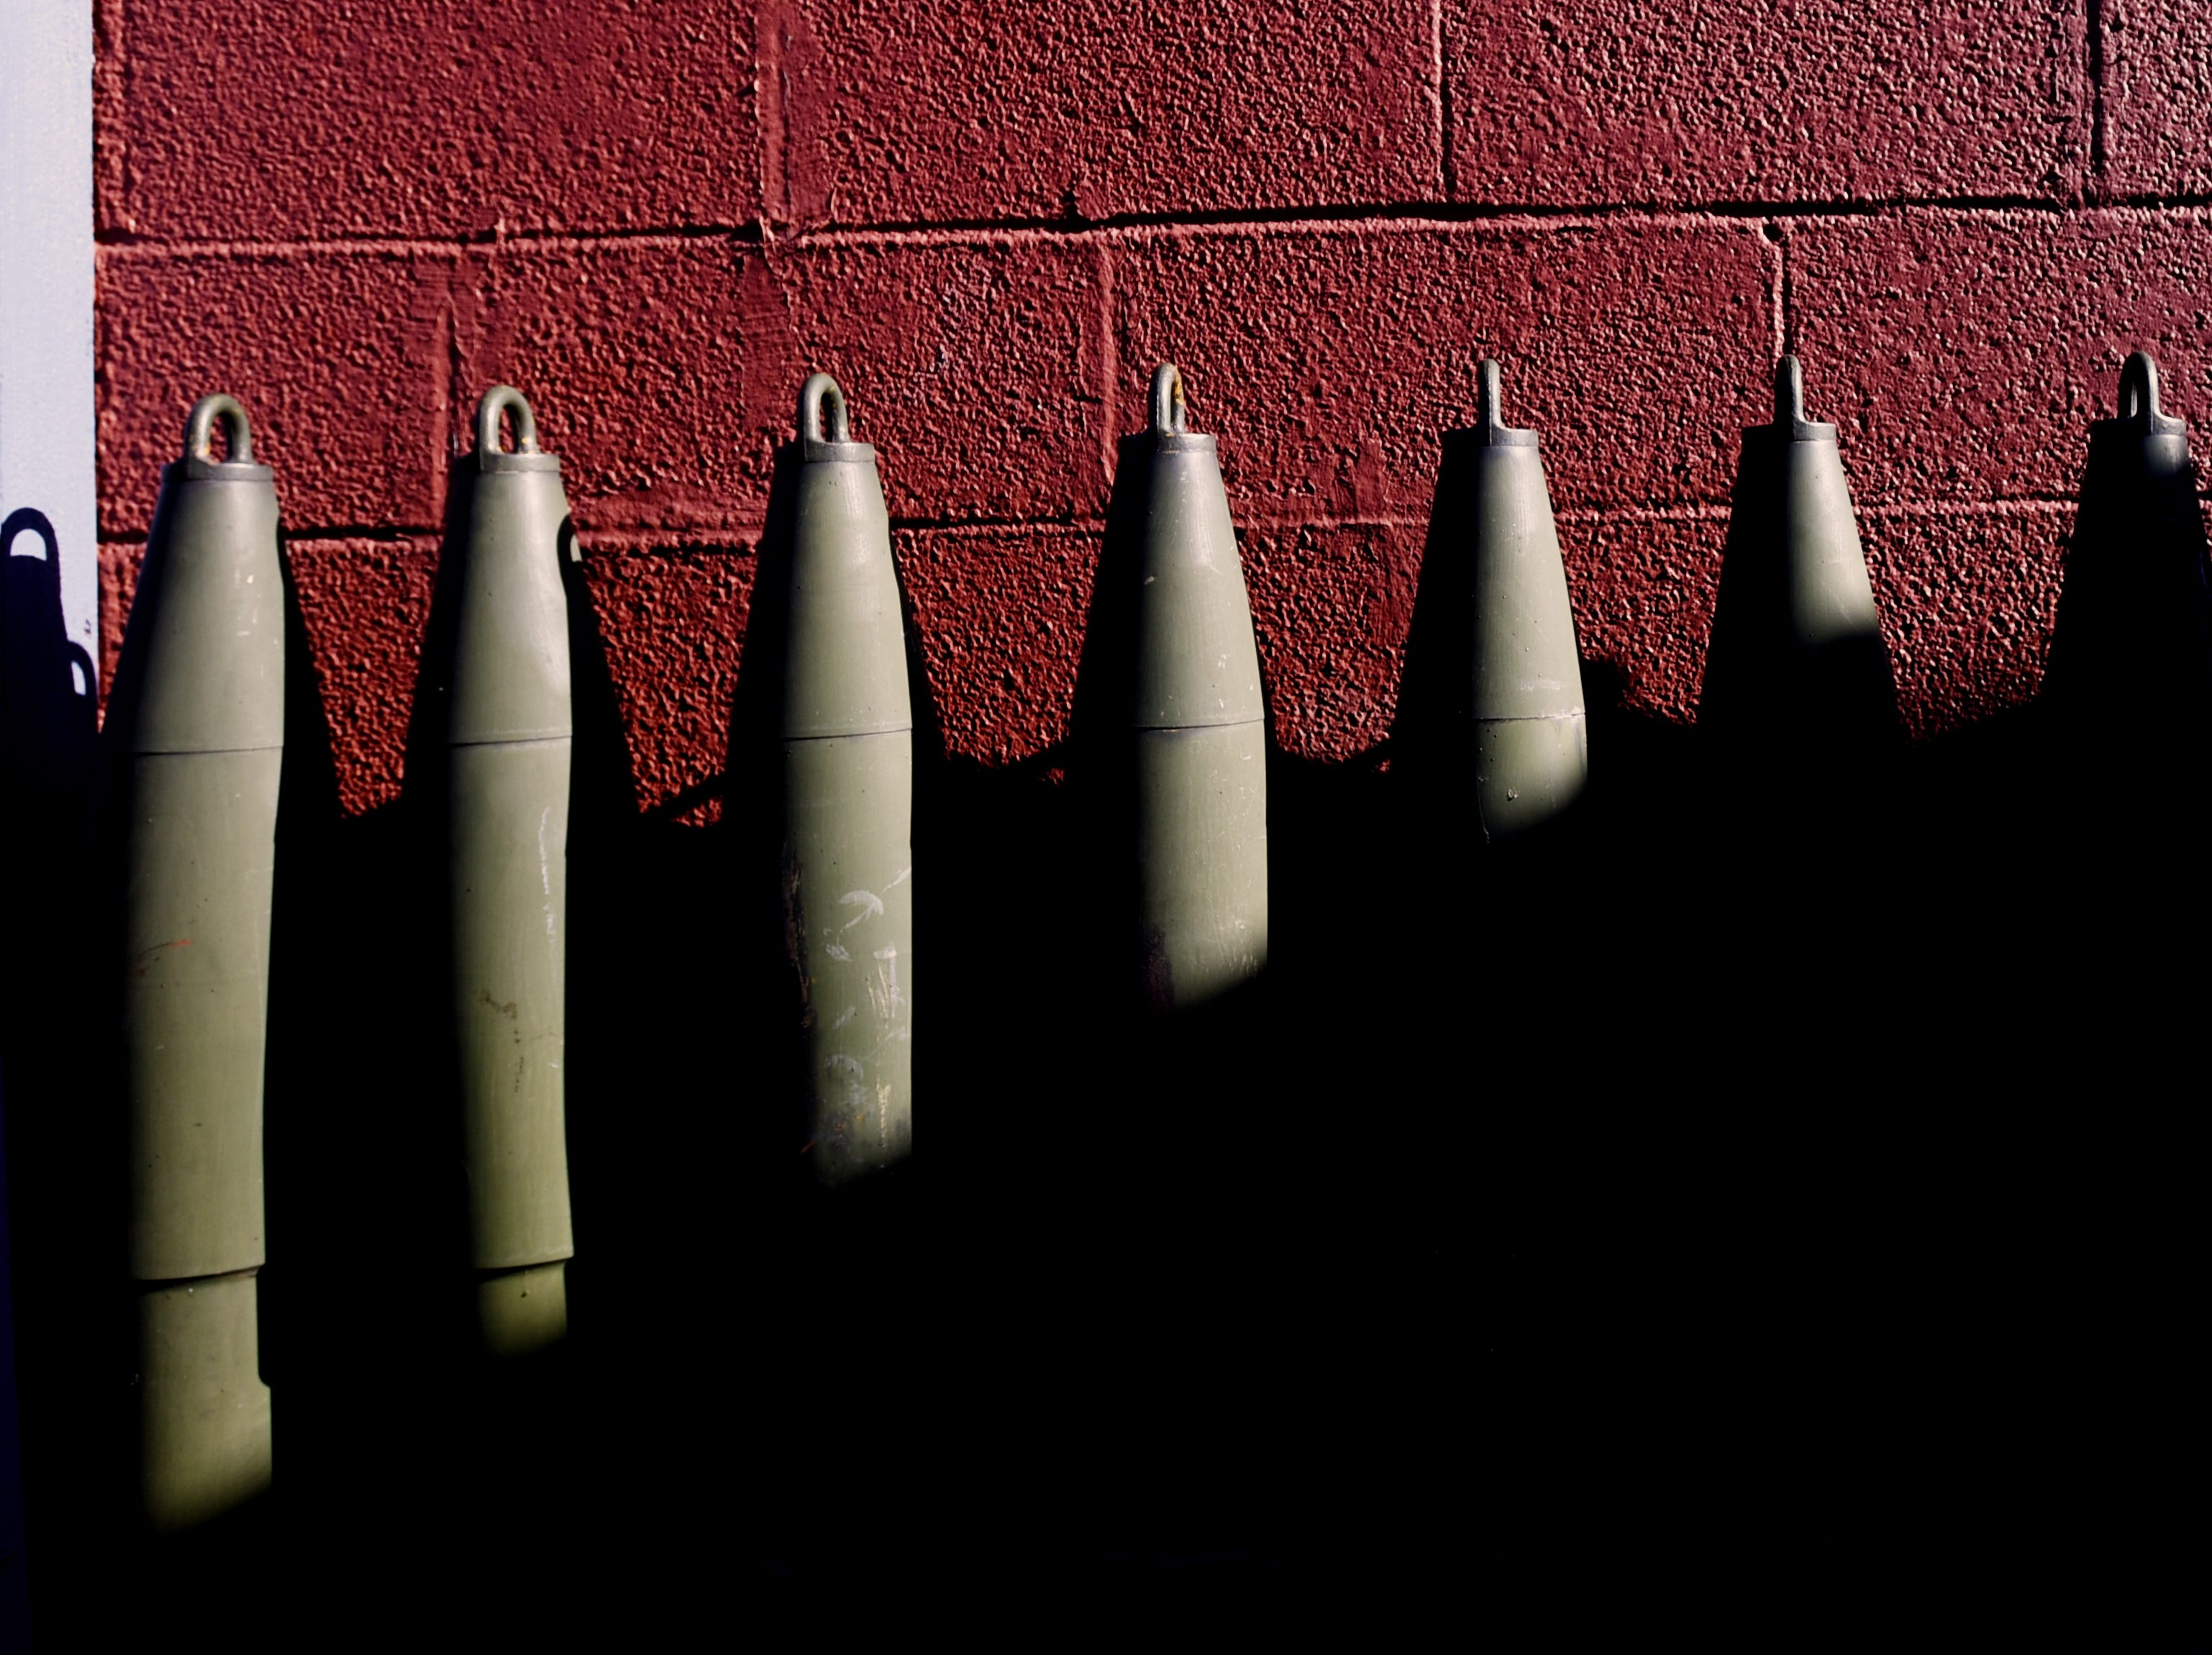 Ammo lined up outside the Garfield VFW post 2867 in Garfield on Friday December 7, 2018.